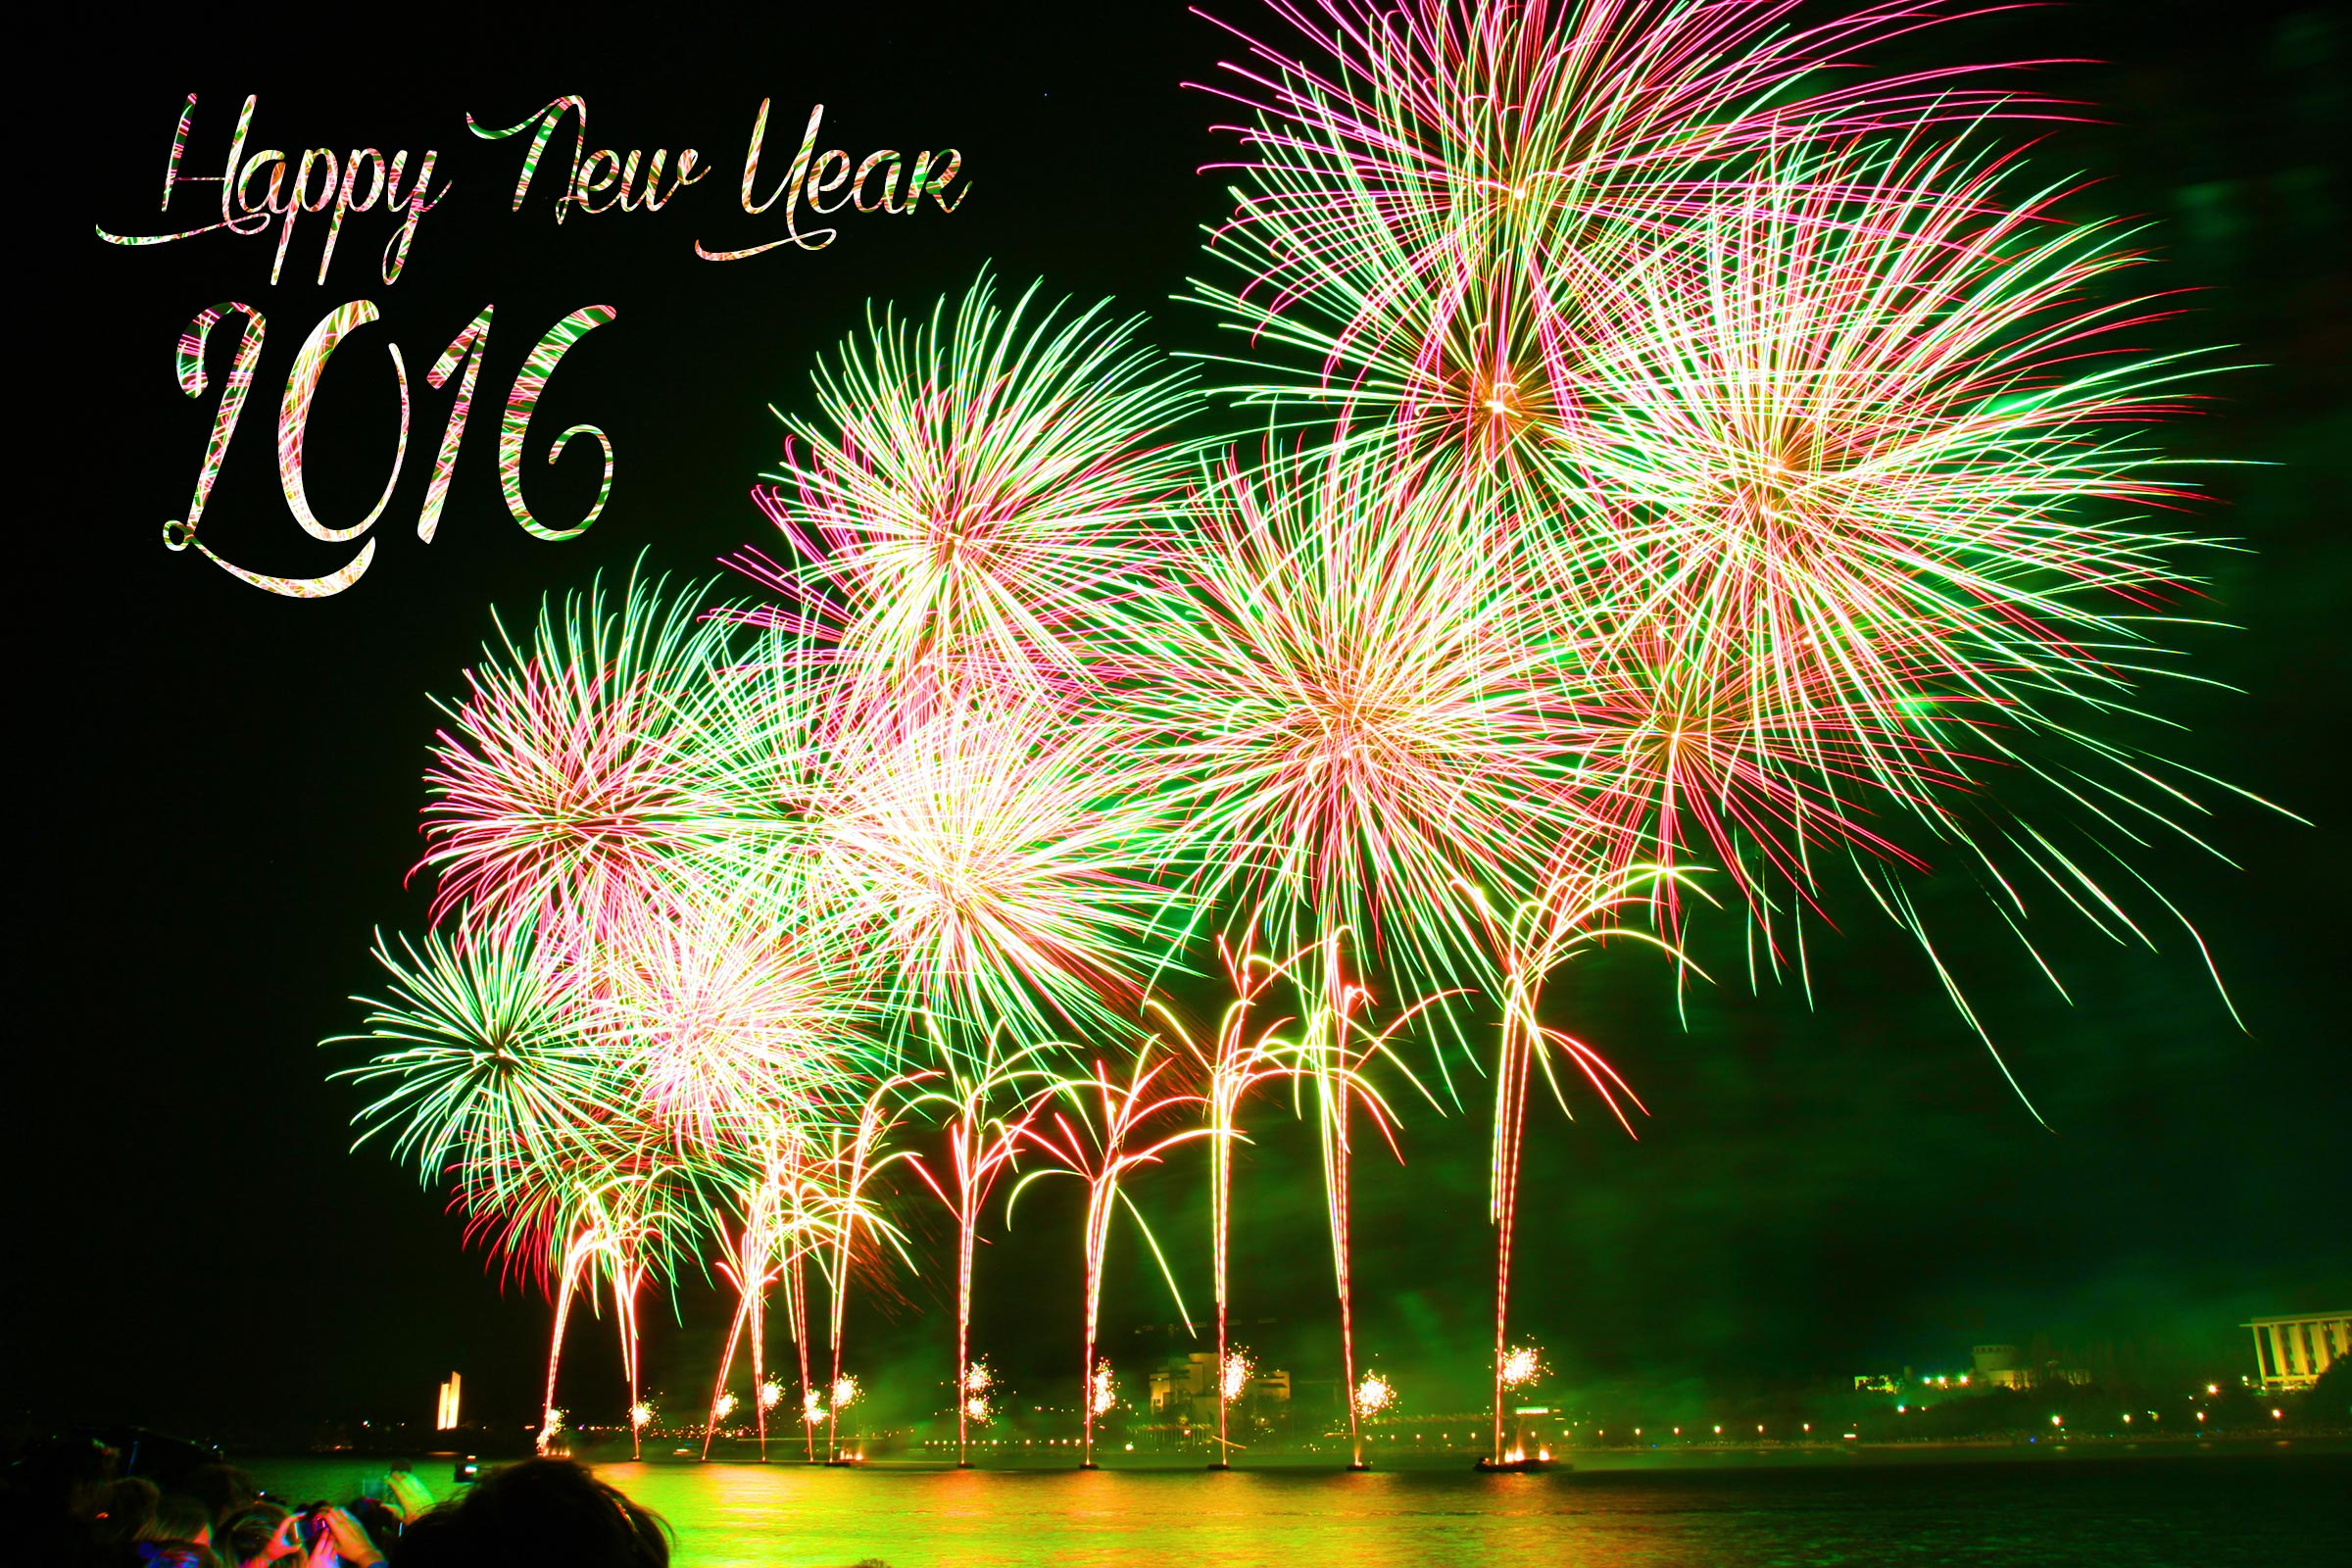 Happy New Year 015 Hight Quality Background wallpaper 2400x1600